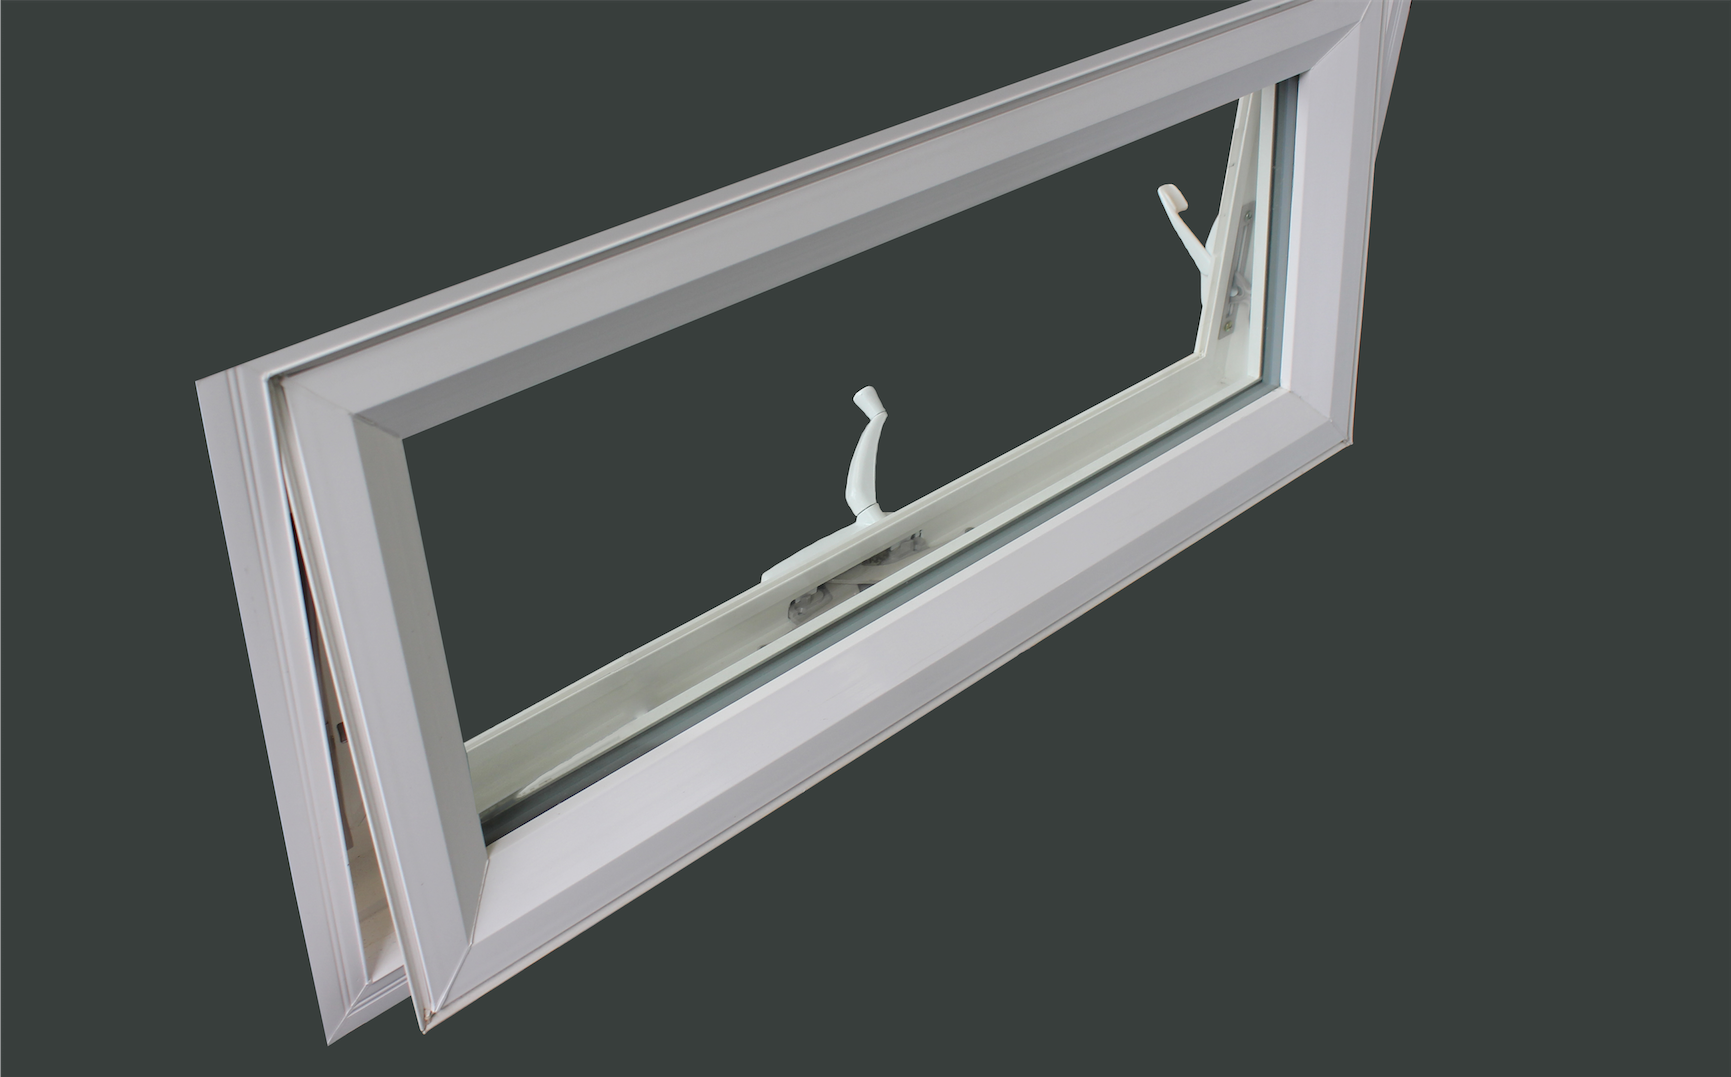 New construction awning windows specialty wholesale supply for Buy new construction windows online